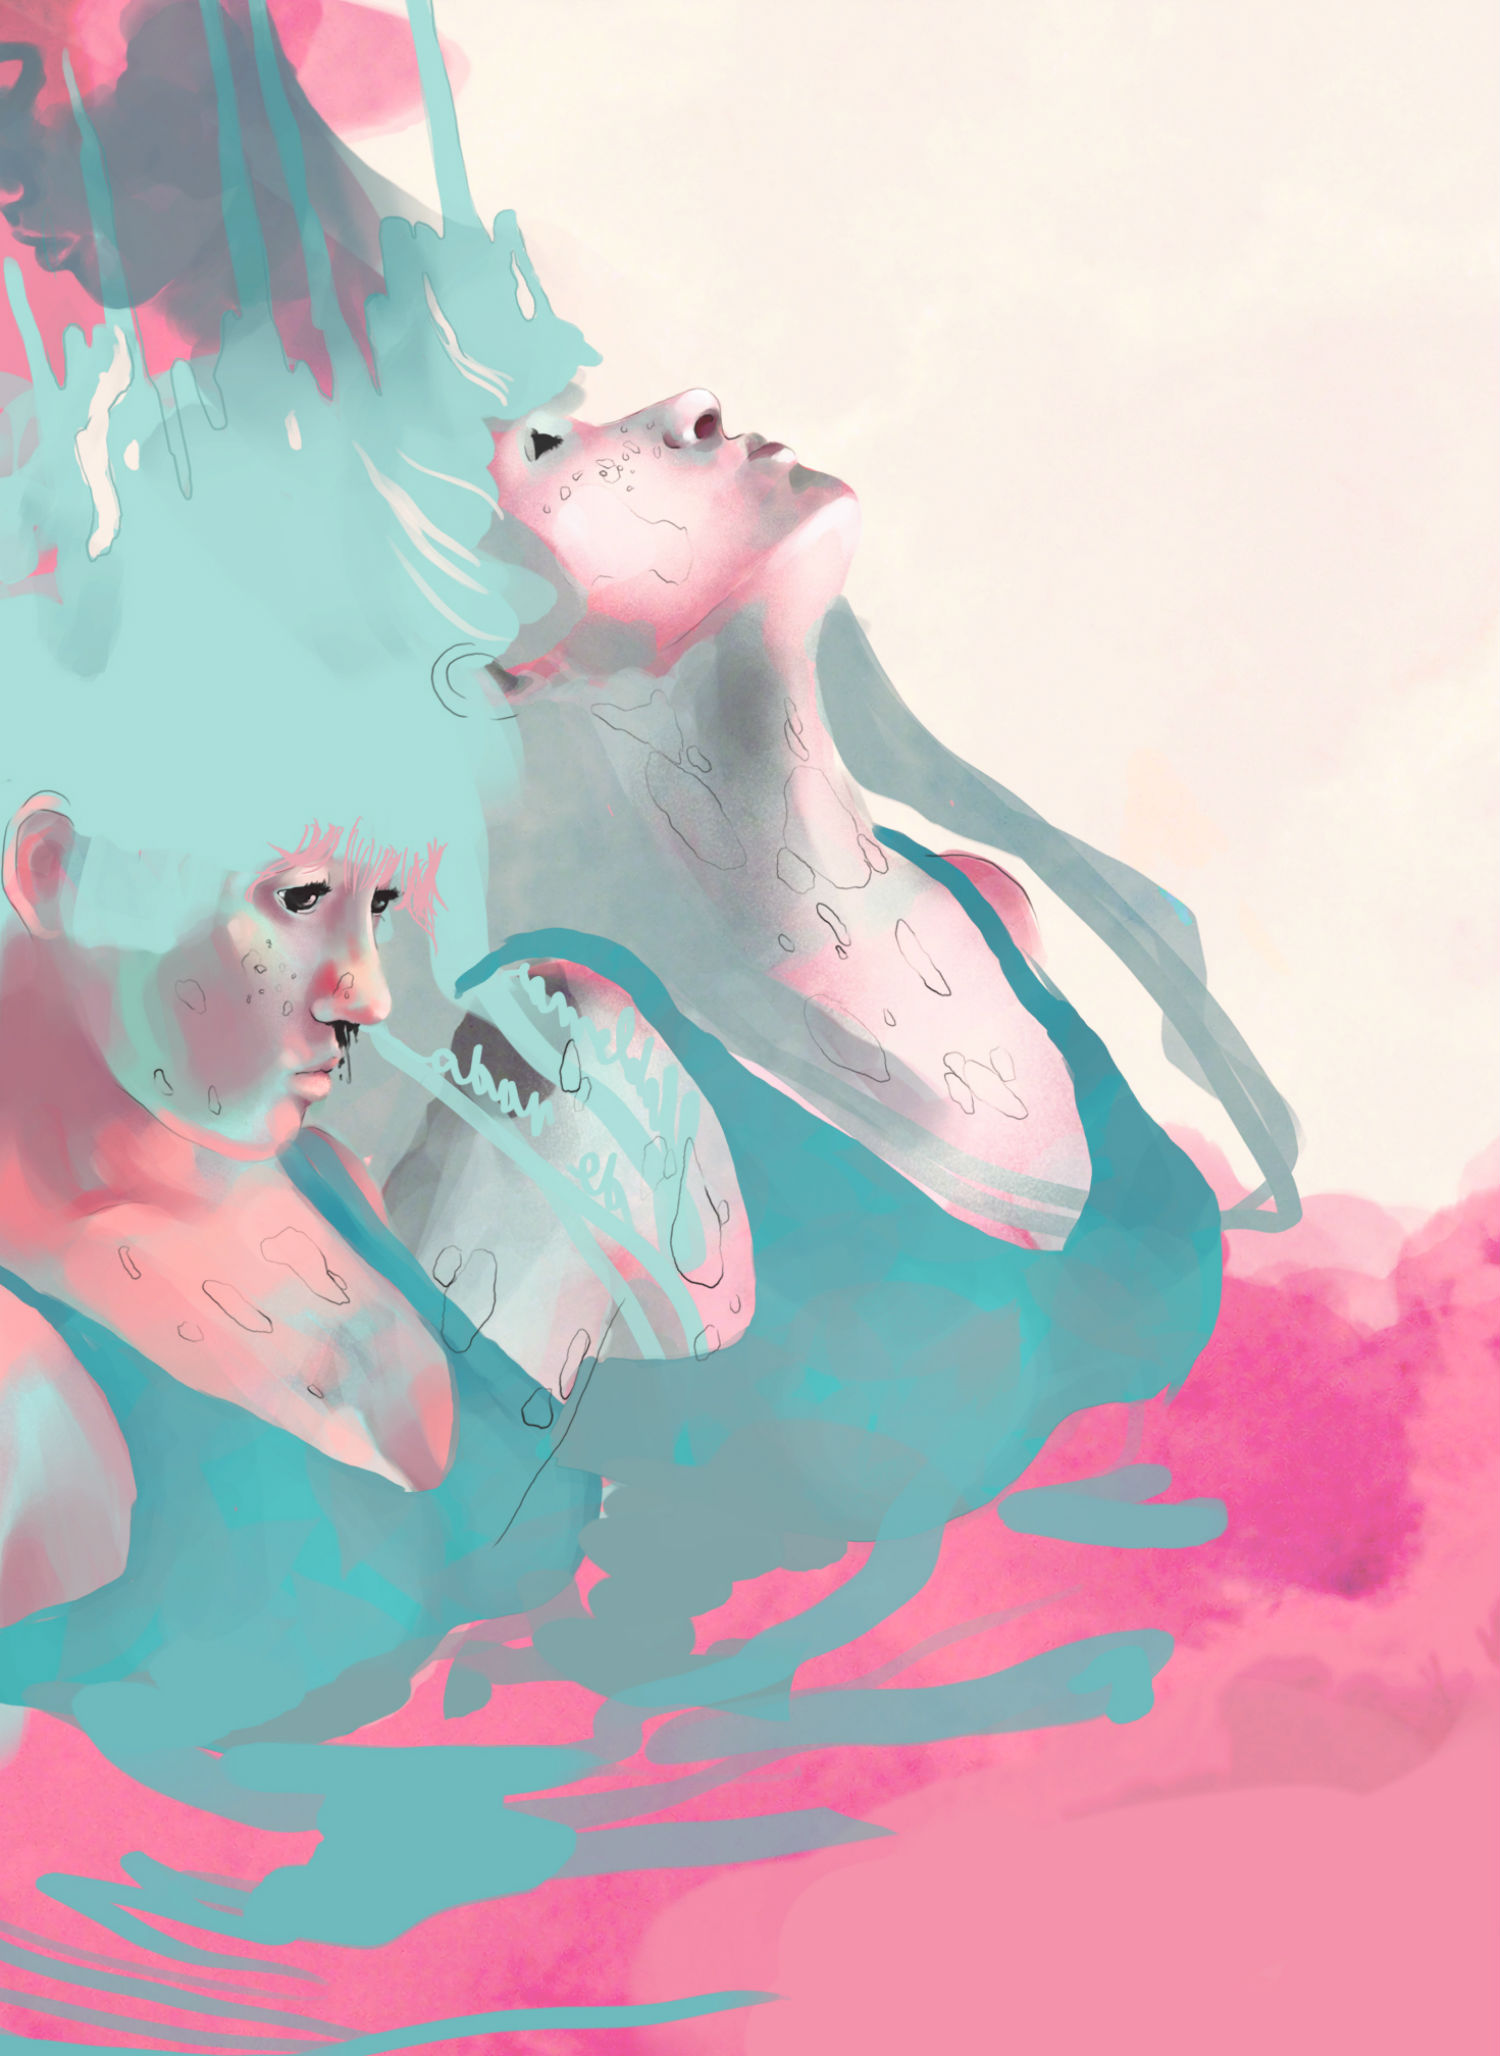 Carolina Rodriguez Fuenmayor illustration surreal colour dreamy